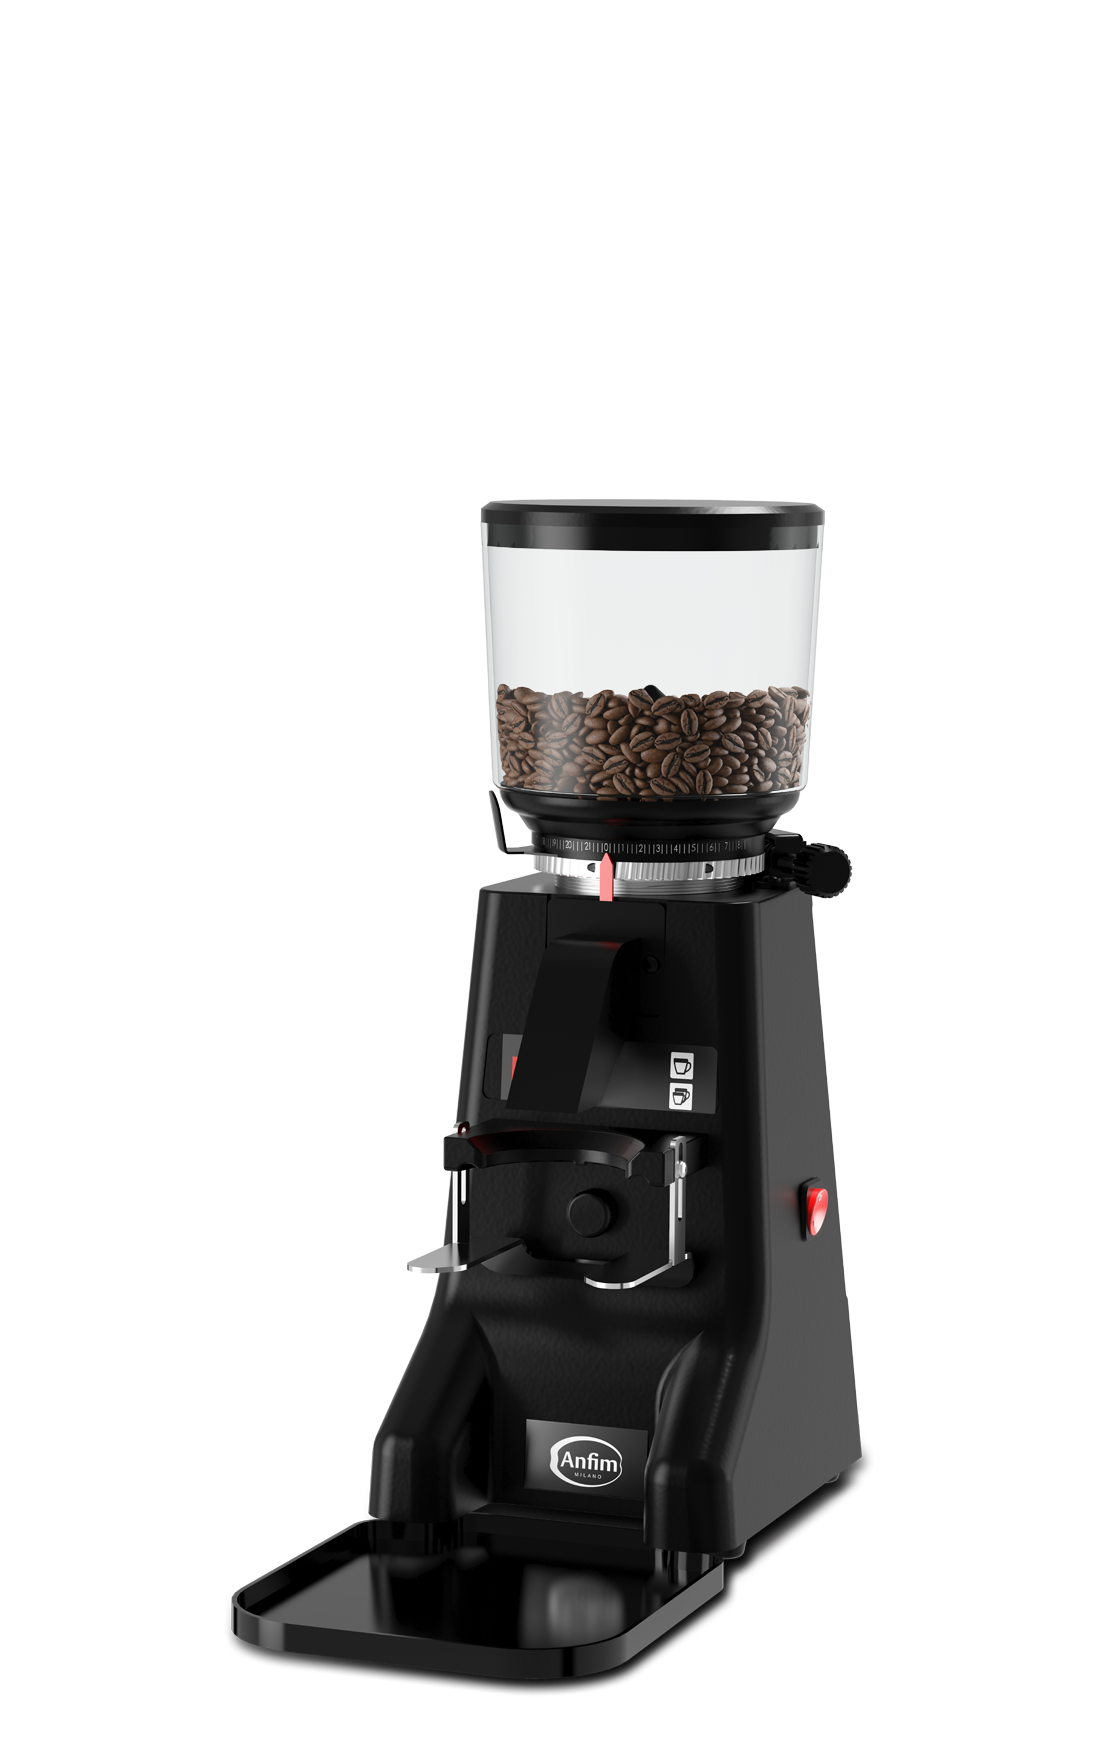 Anfim Best On Demand Electronic stepless macinacaffe' espresso